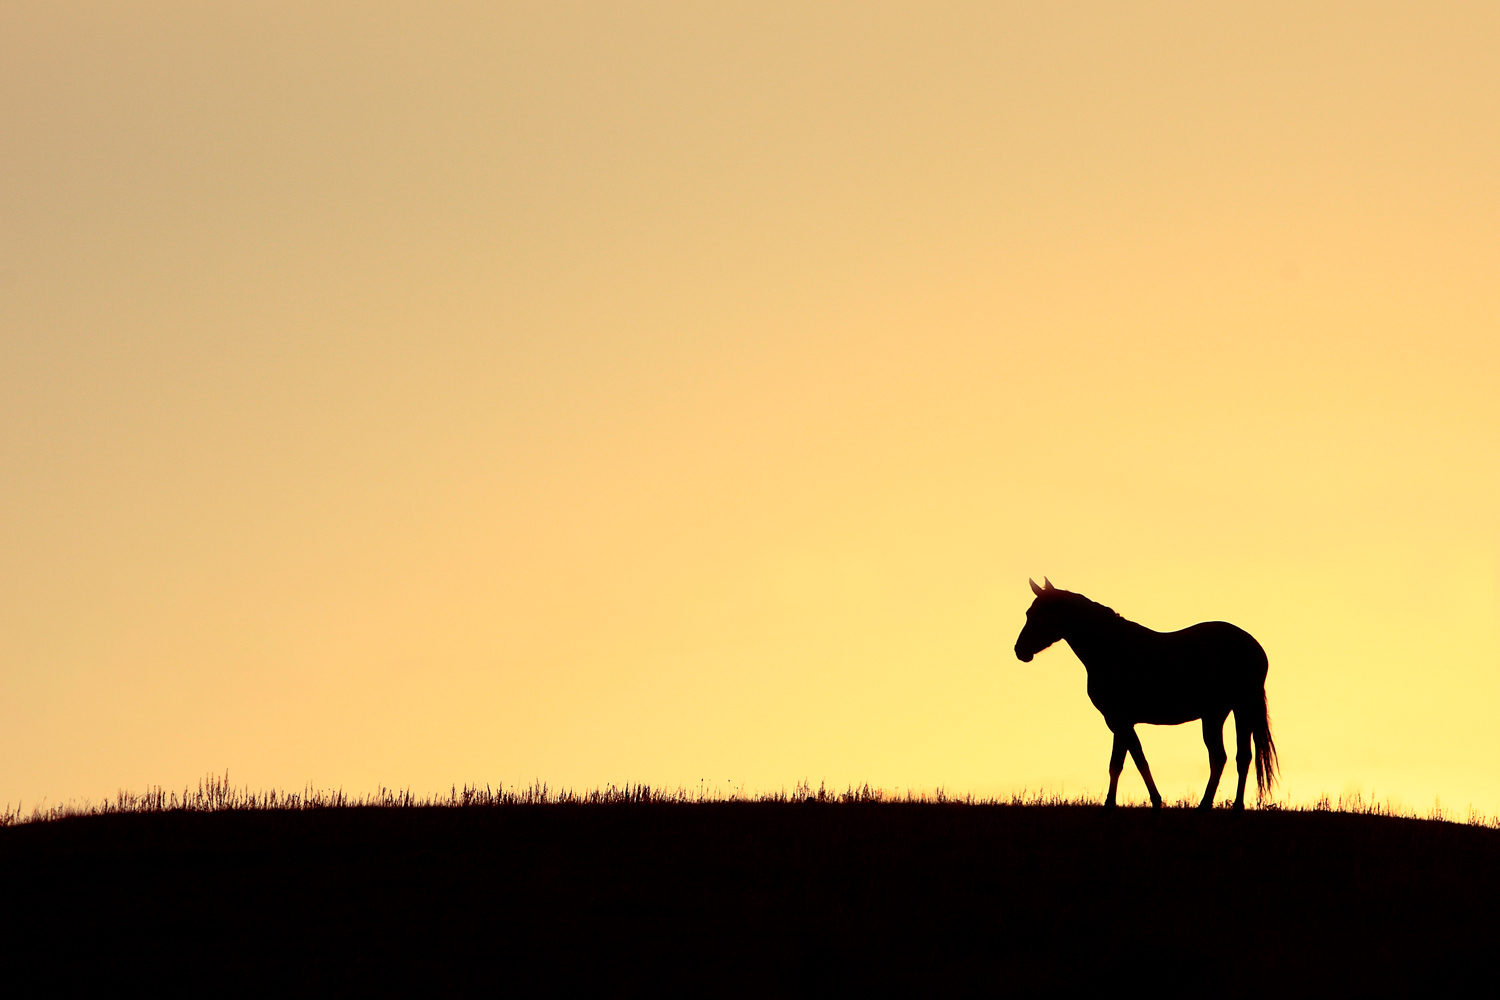 Horse on a Hilltop